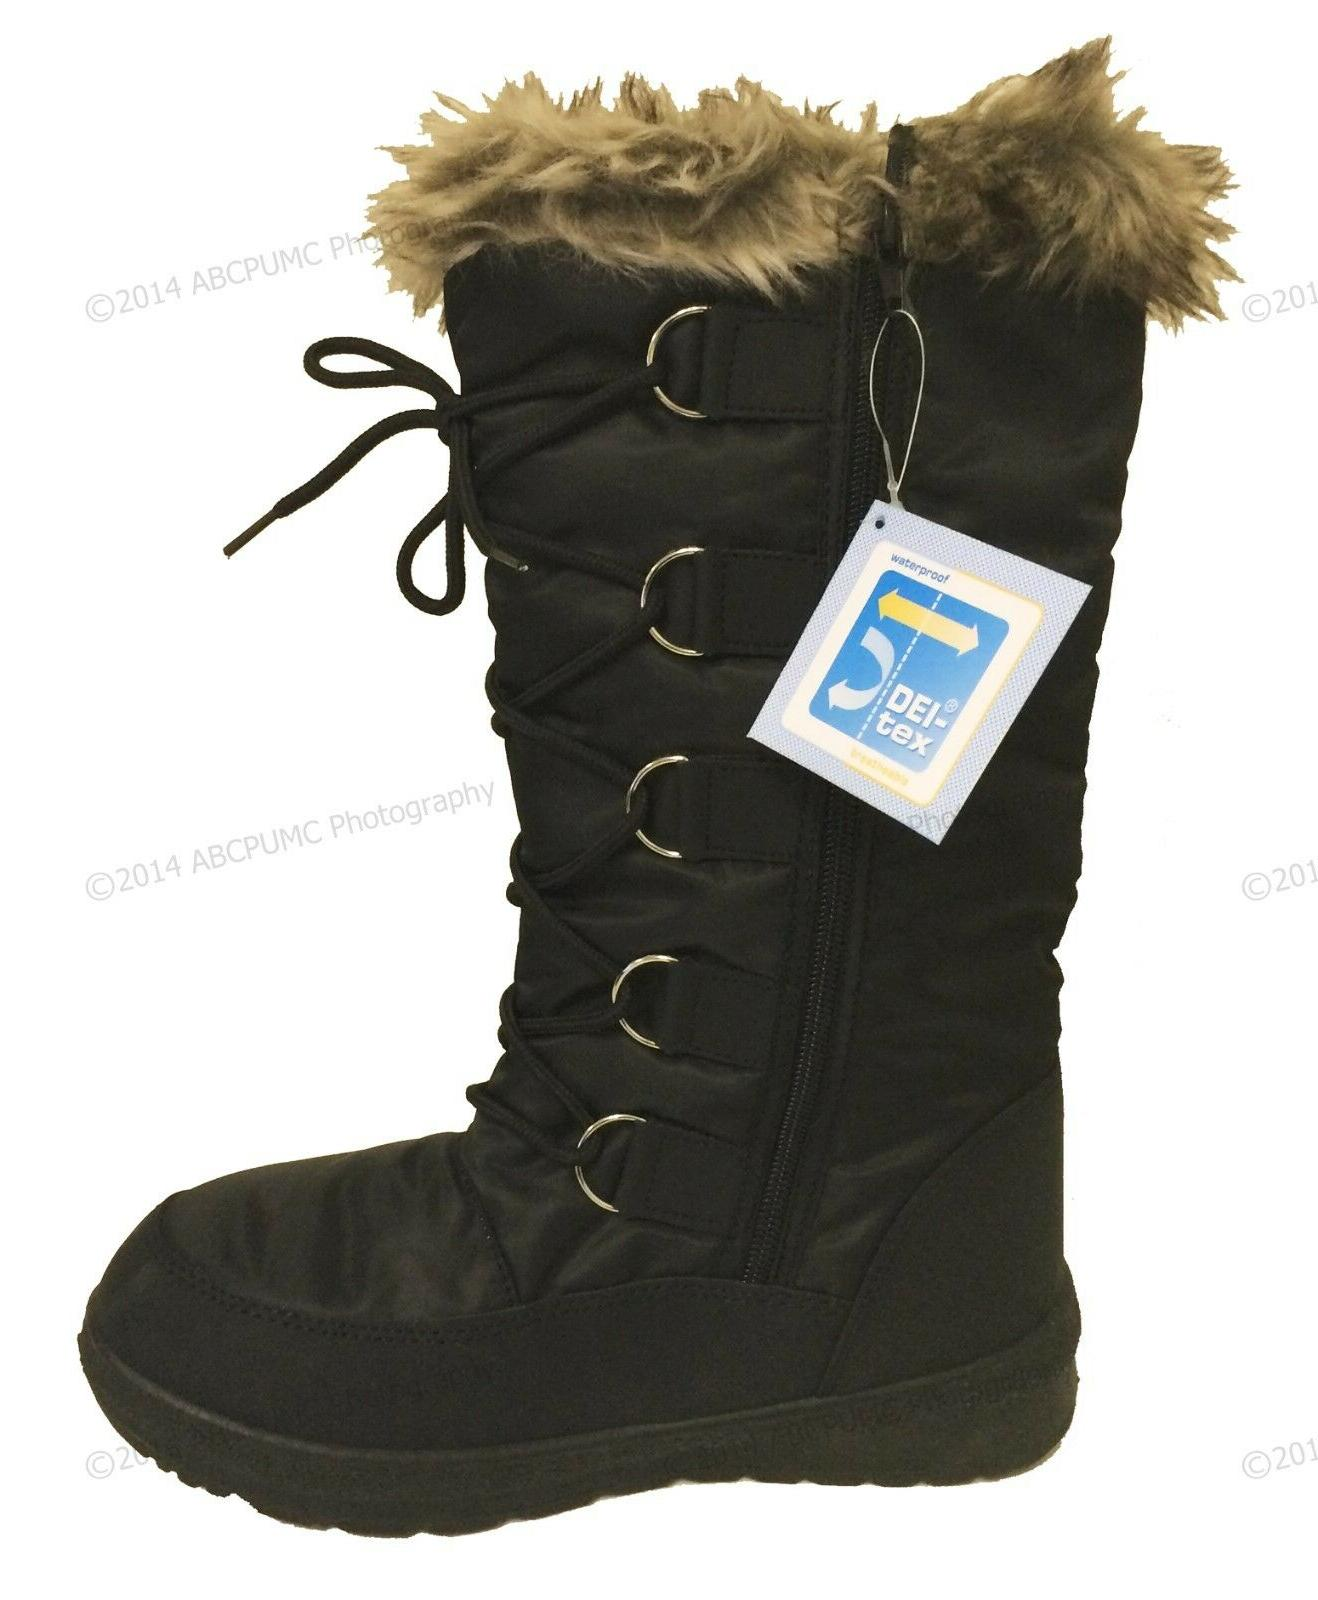 Boots Snow Insulated Waterproof Shoe